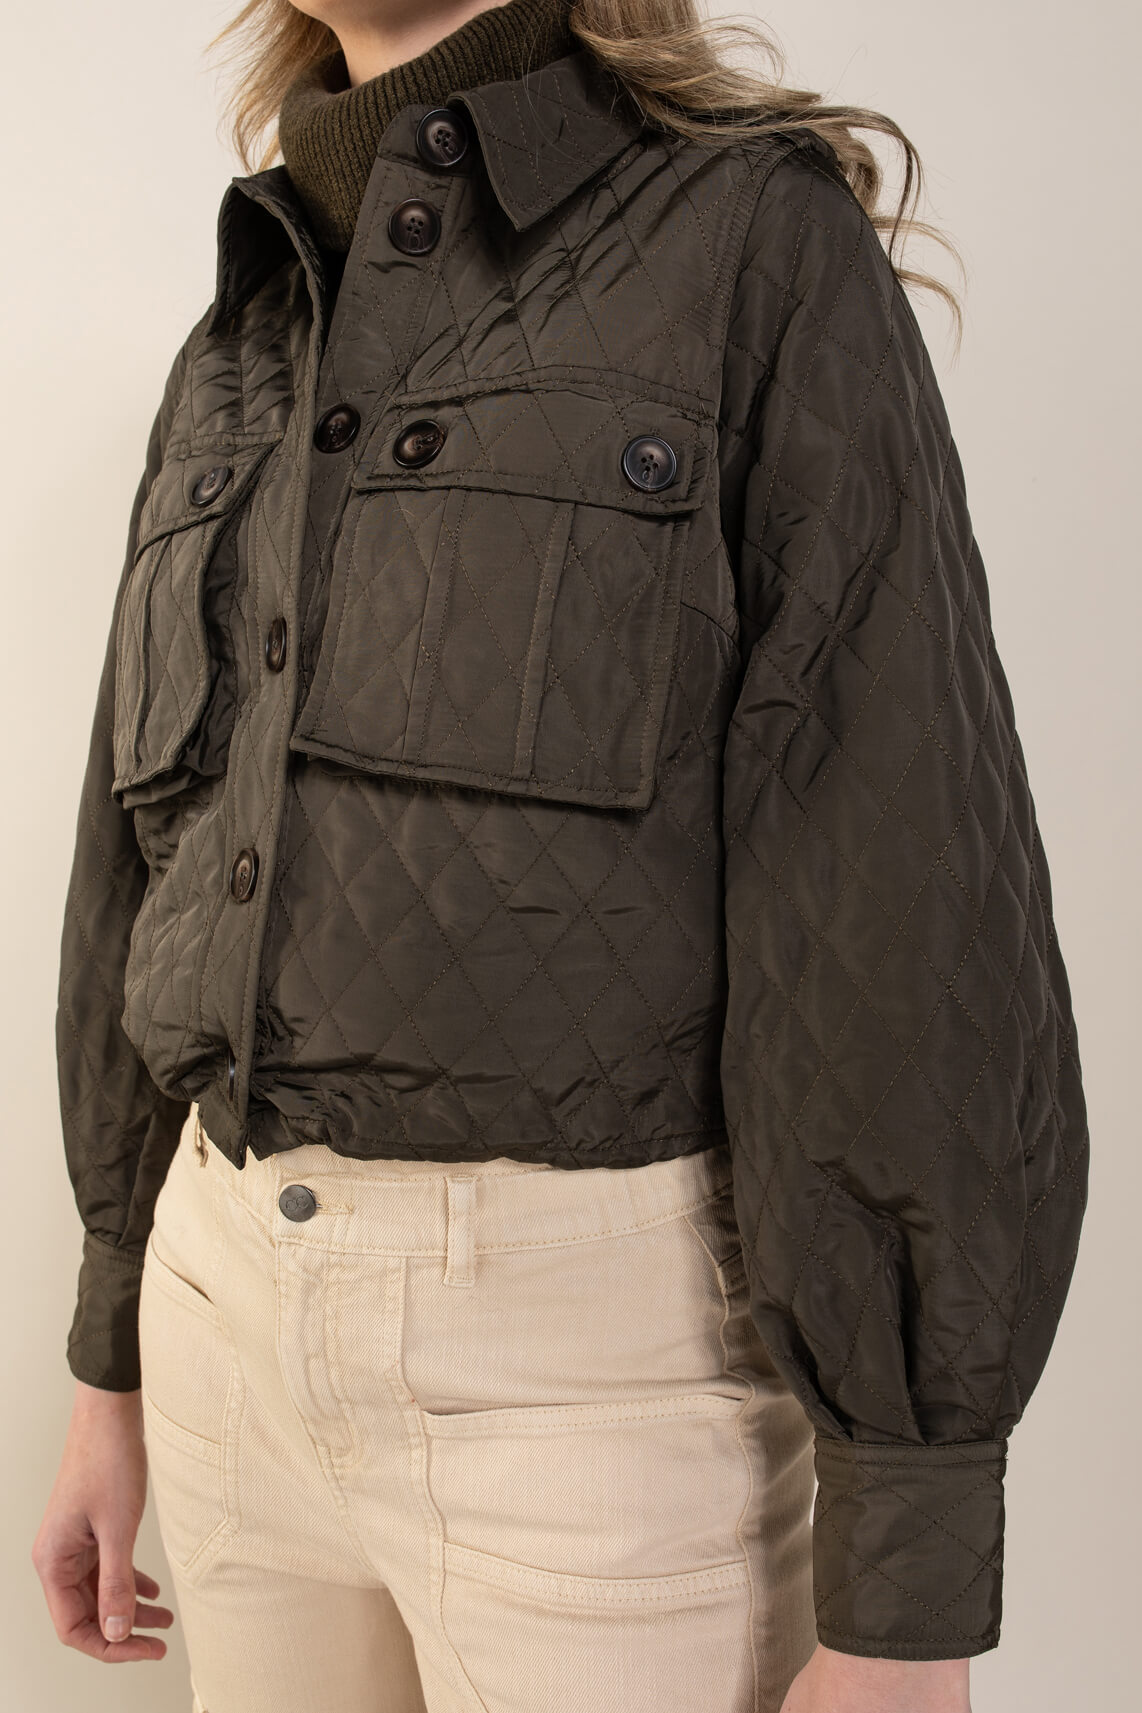 Co Couture Dames Ibbie jacket groen